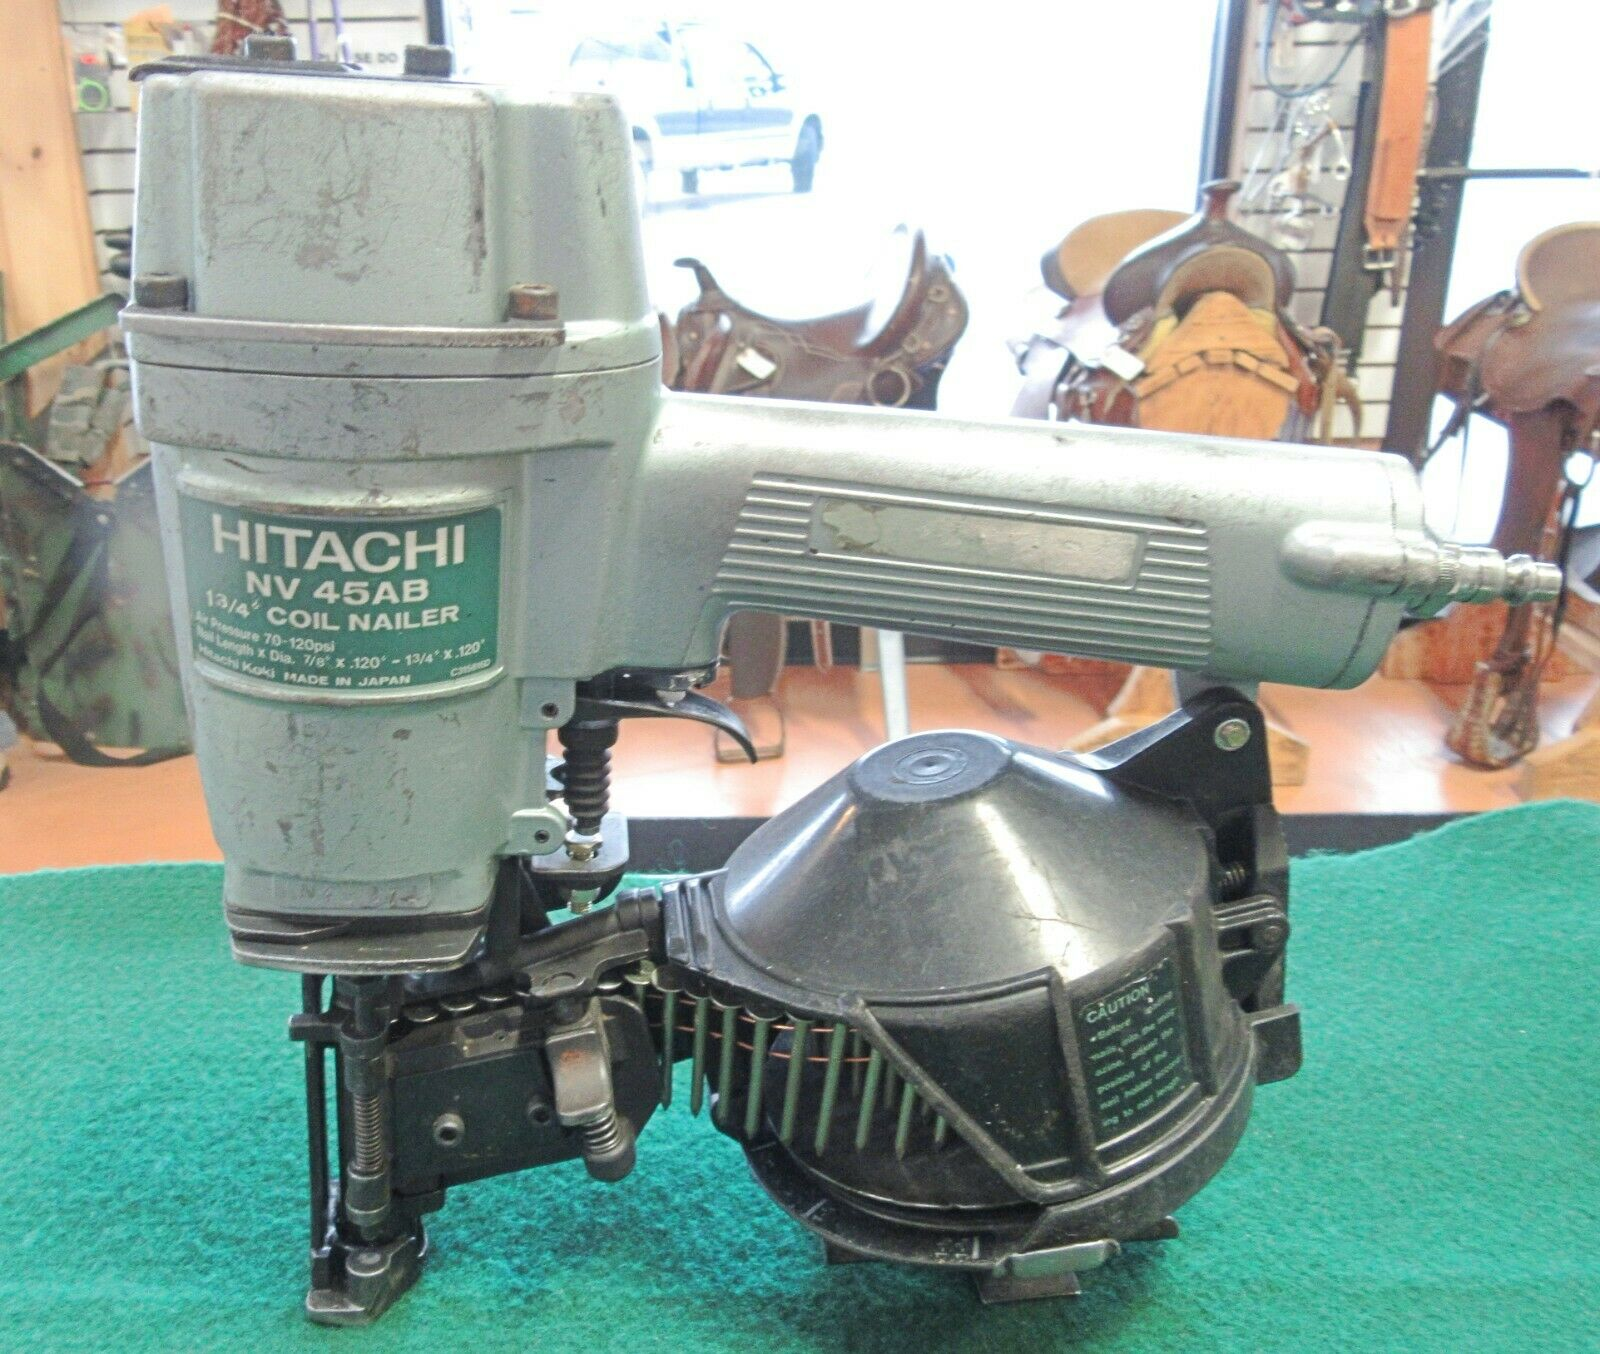 HITACHI NV 45AB 7/7 - 1-3/4 COIL NAILER - MADE IN JAPAN - VG CONDITION . Available Now for 225.00